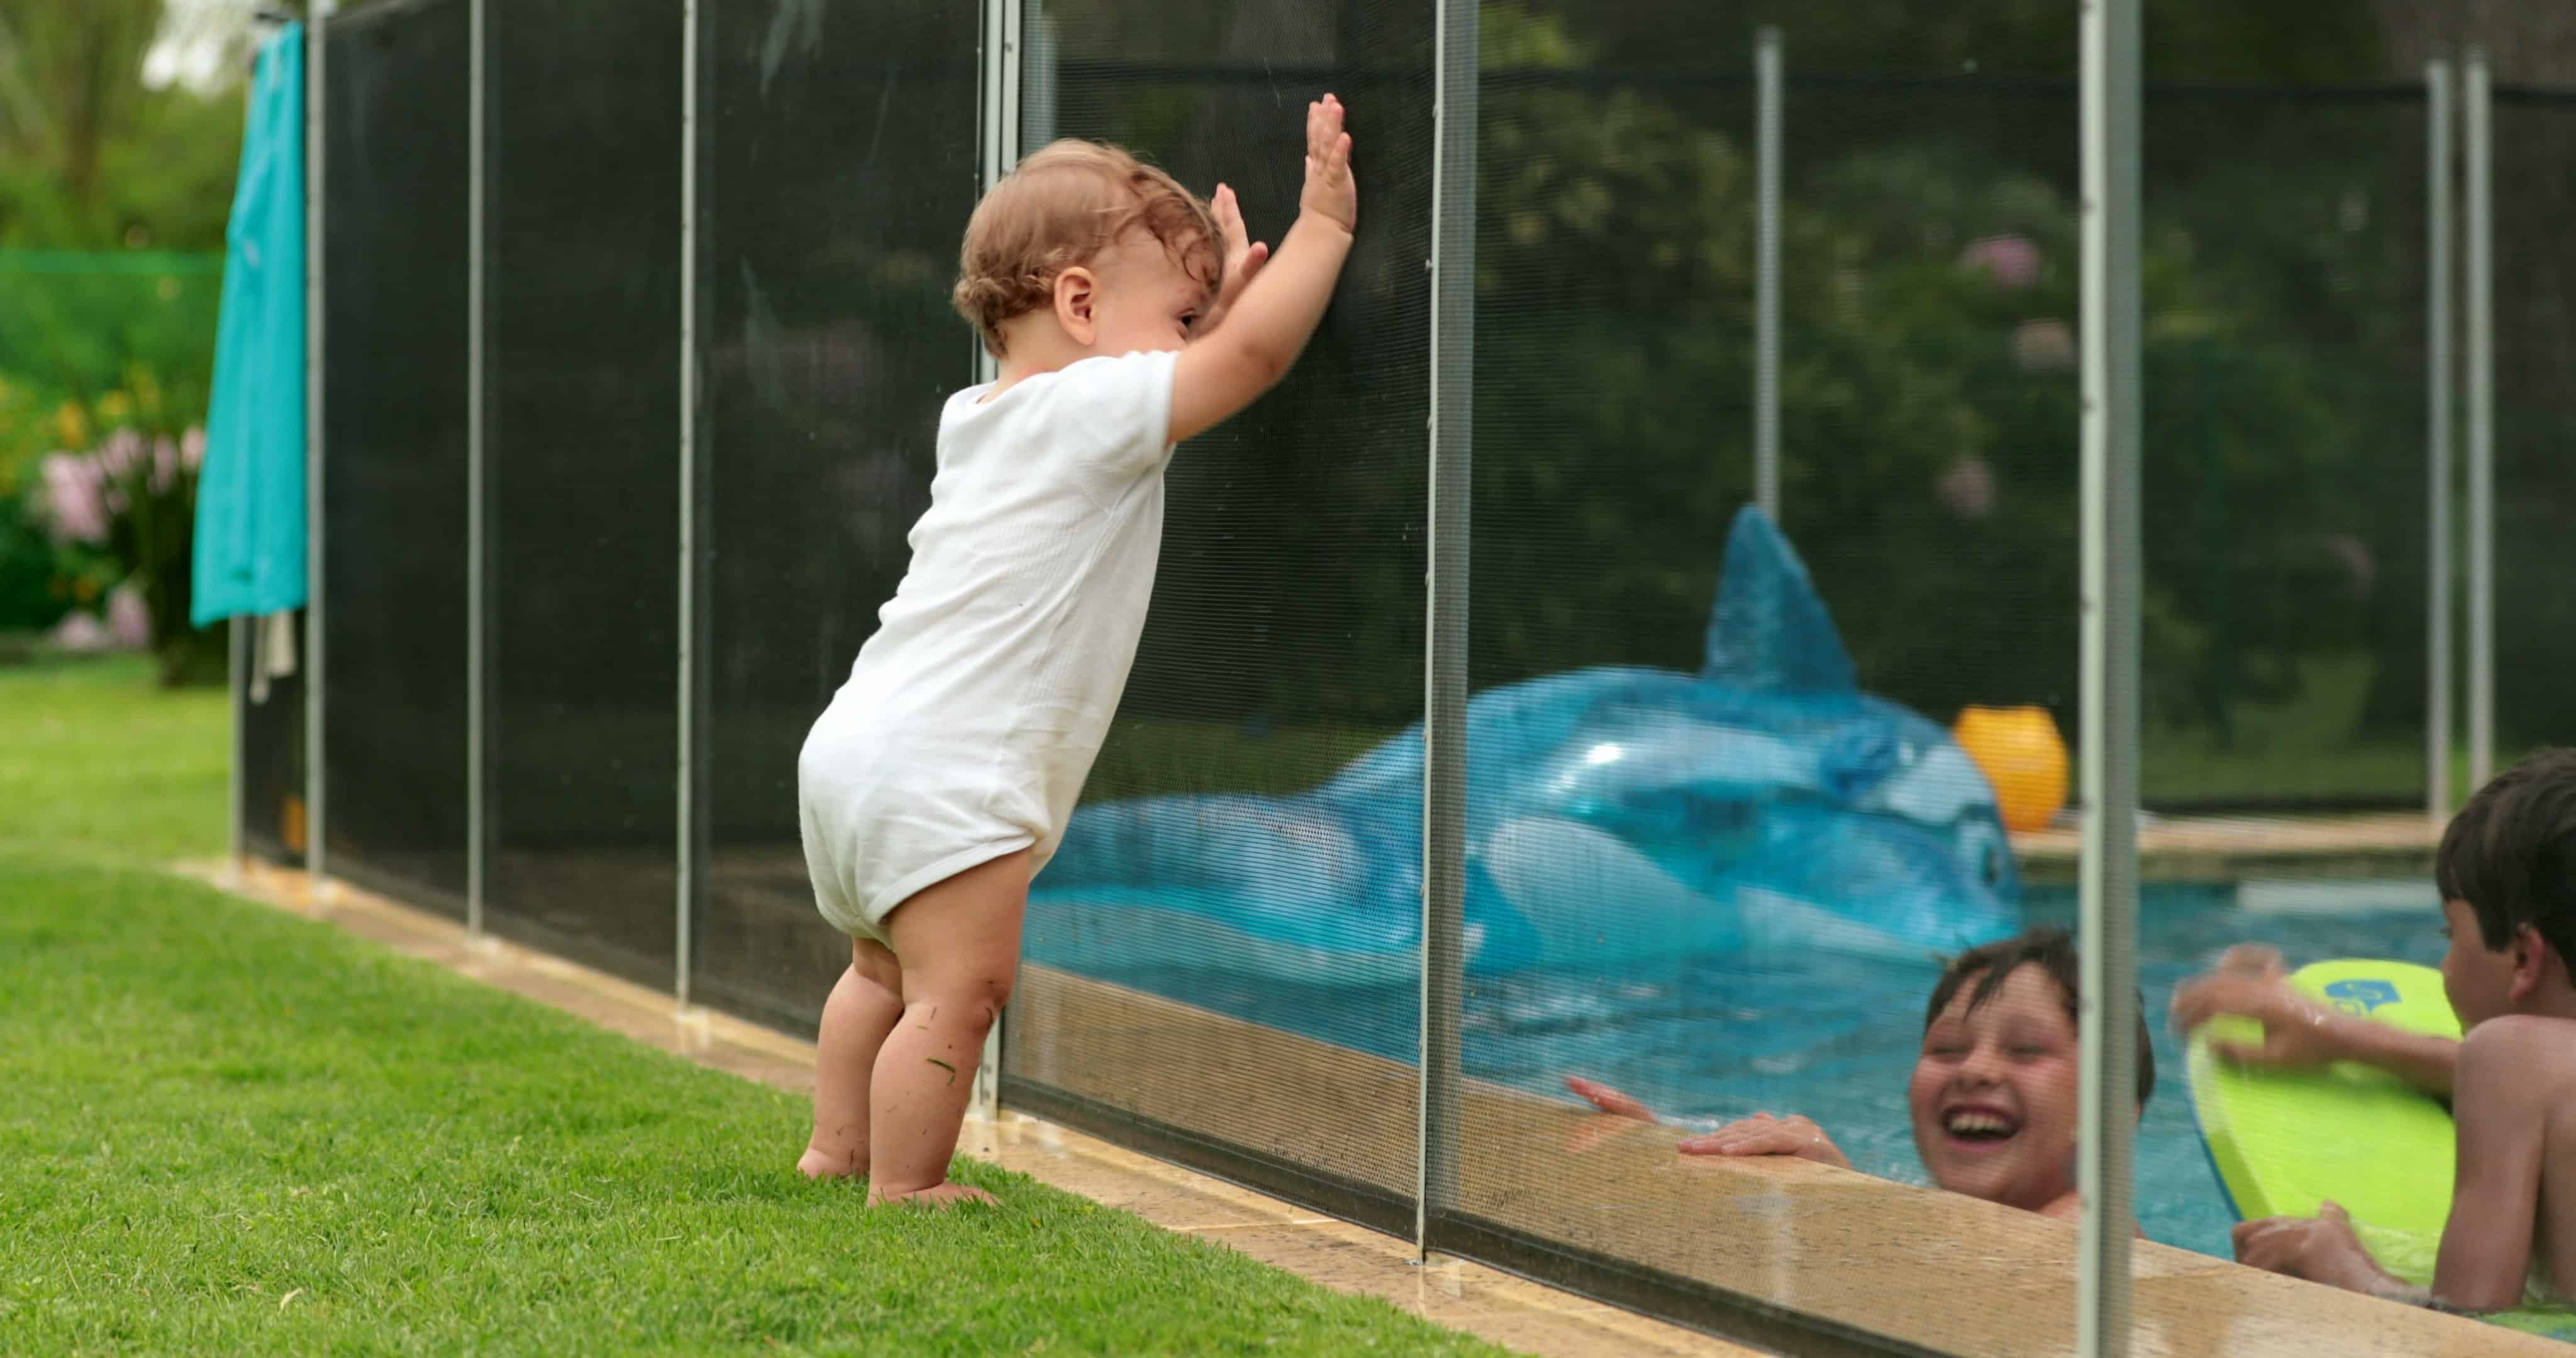 stock-photo--baby-looking-at-kids-play-inside-swimming-pool-water-during-sumemr-day-infant-leaning-on-pool-1672014073-min